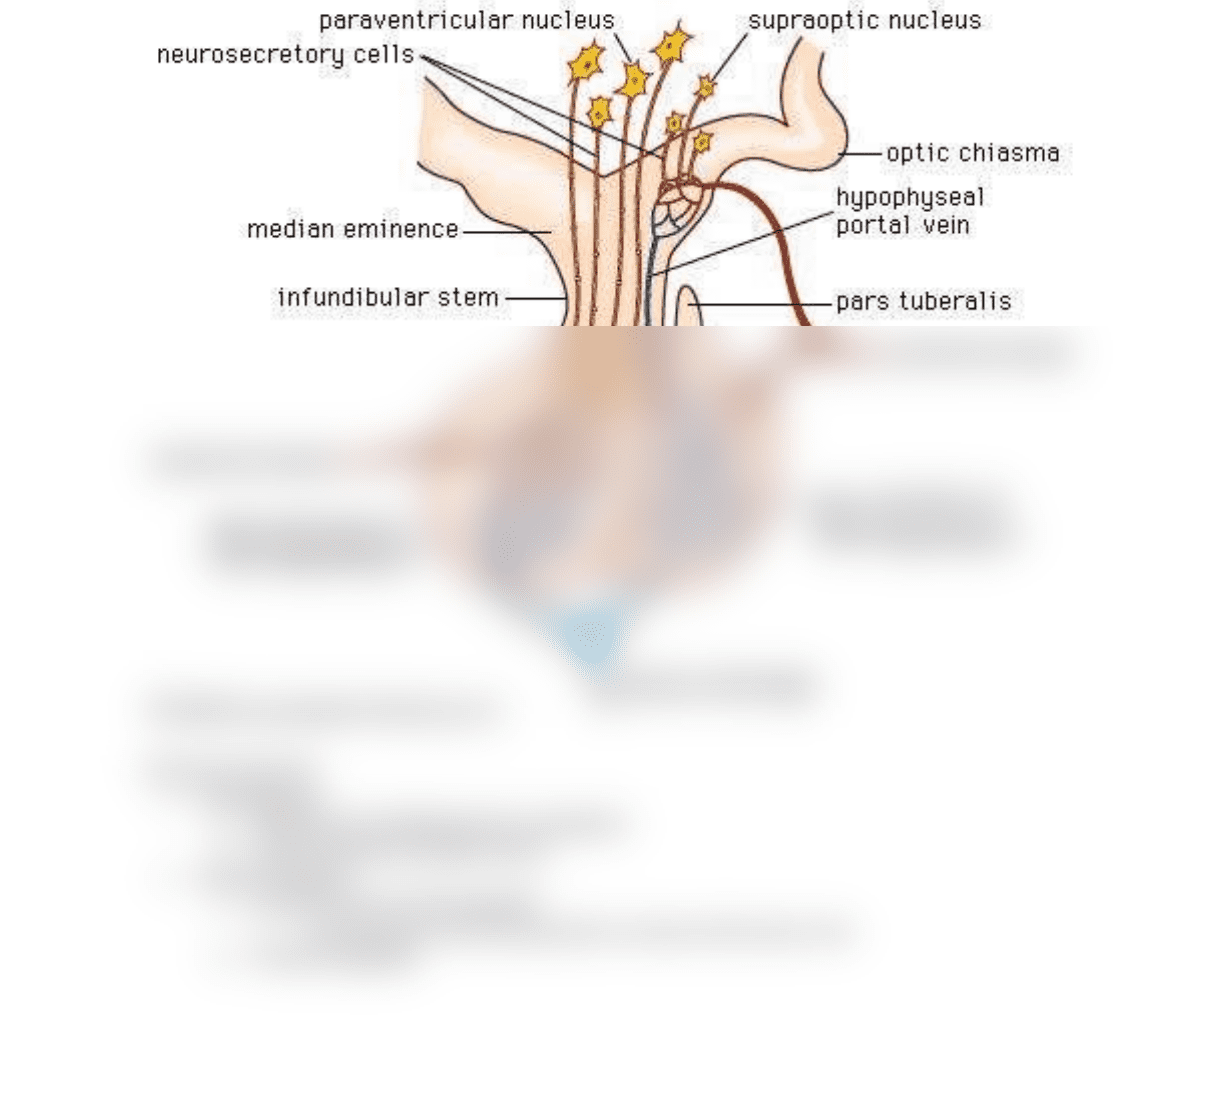 Py 105 Textbook Notes Spring 2018 Chapter 3 Pituitary Gland